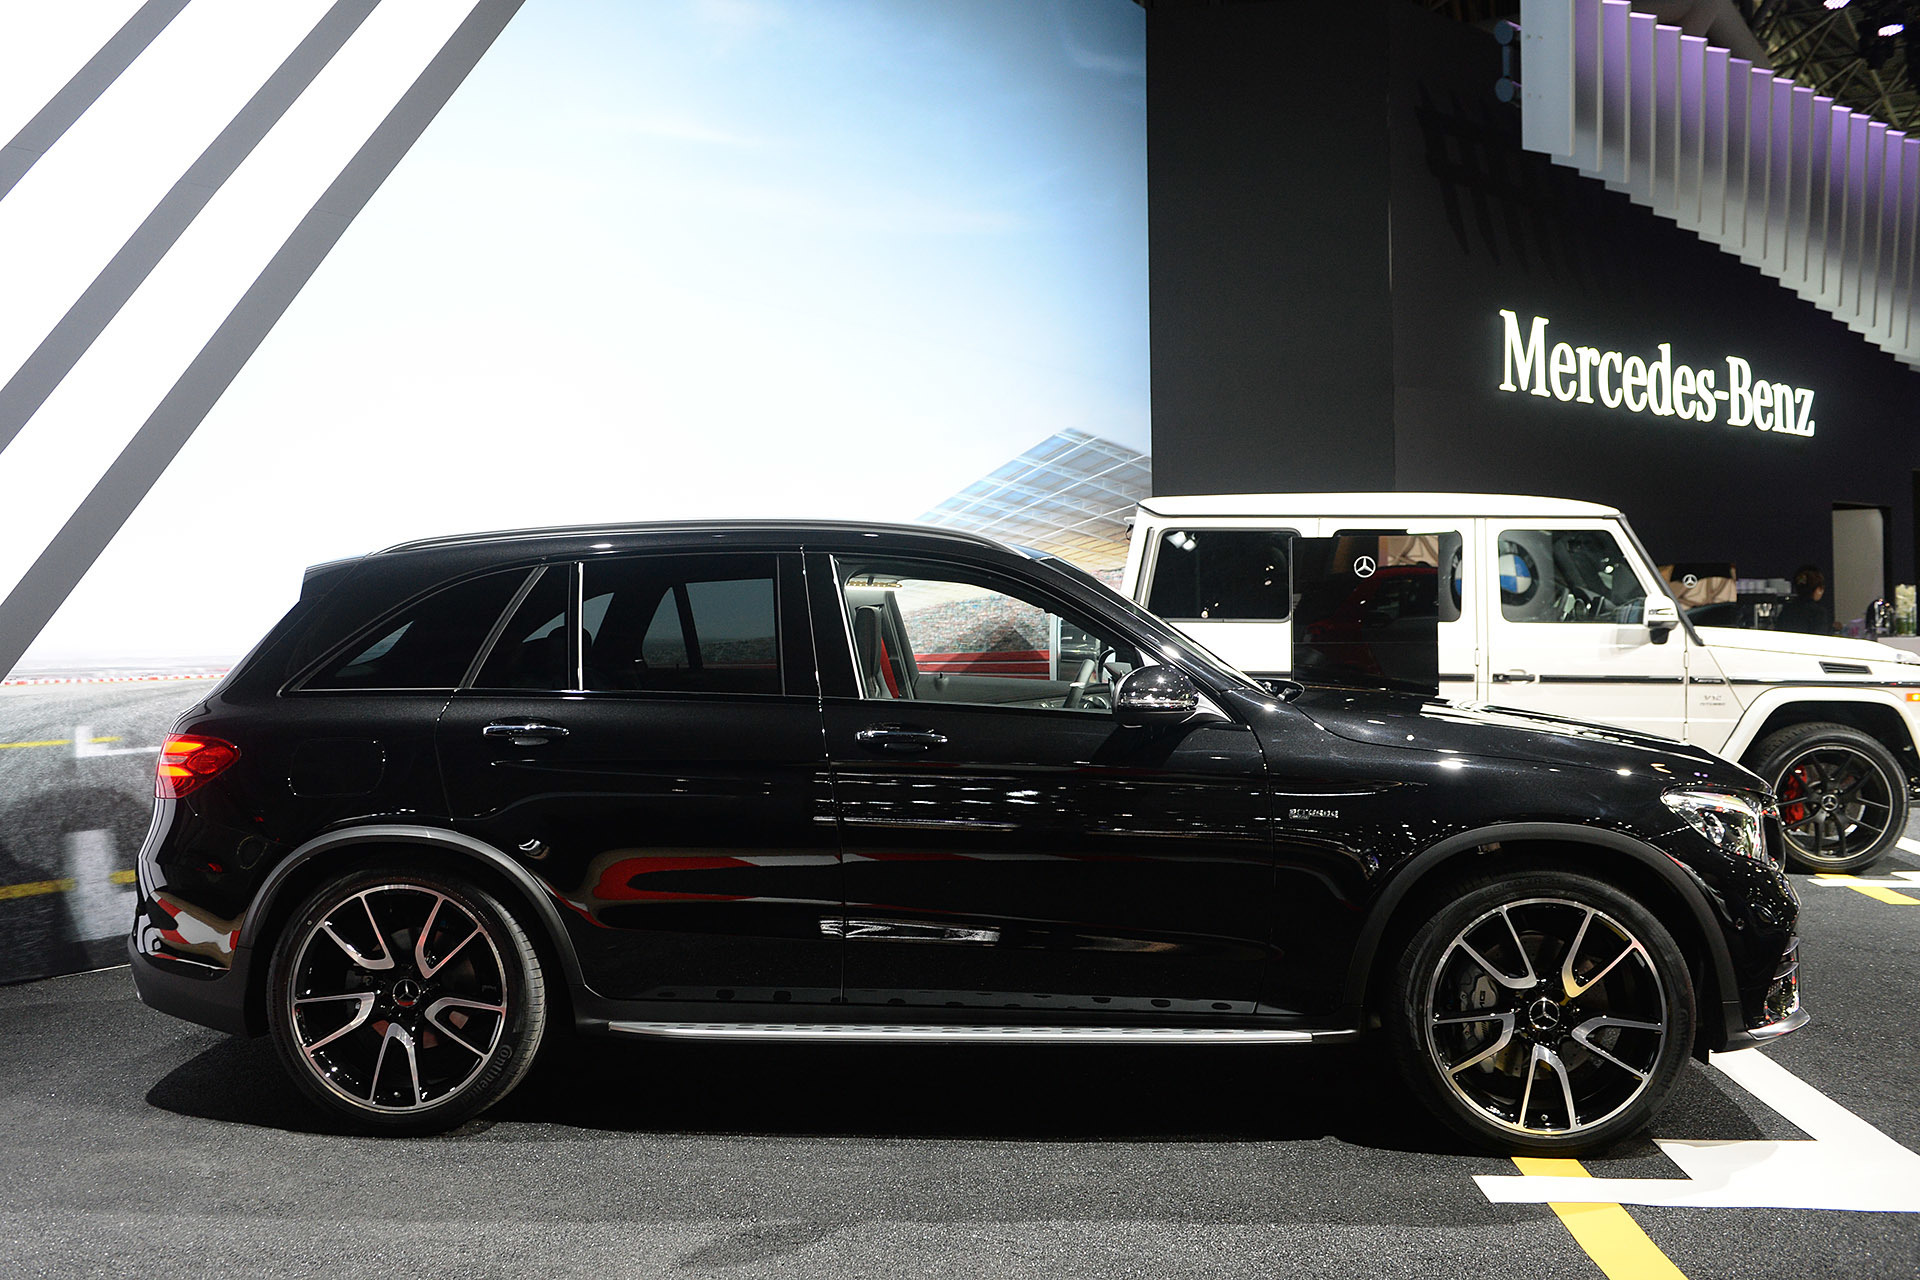 2017 mercedes amg glc43 2016 new york autoshow for Mercedes benz glc43 amg